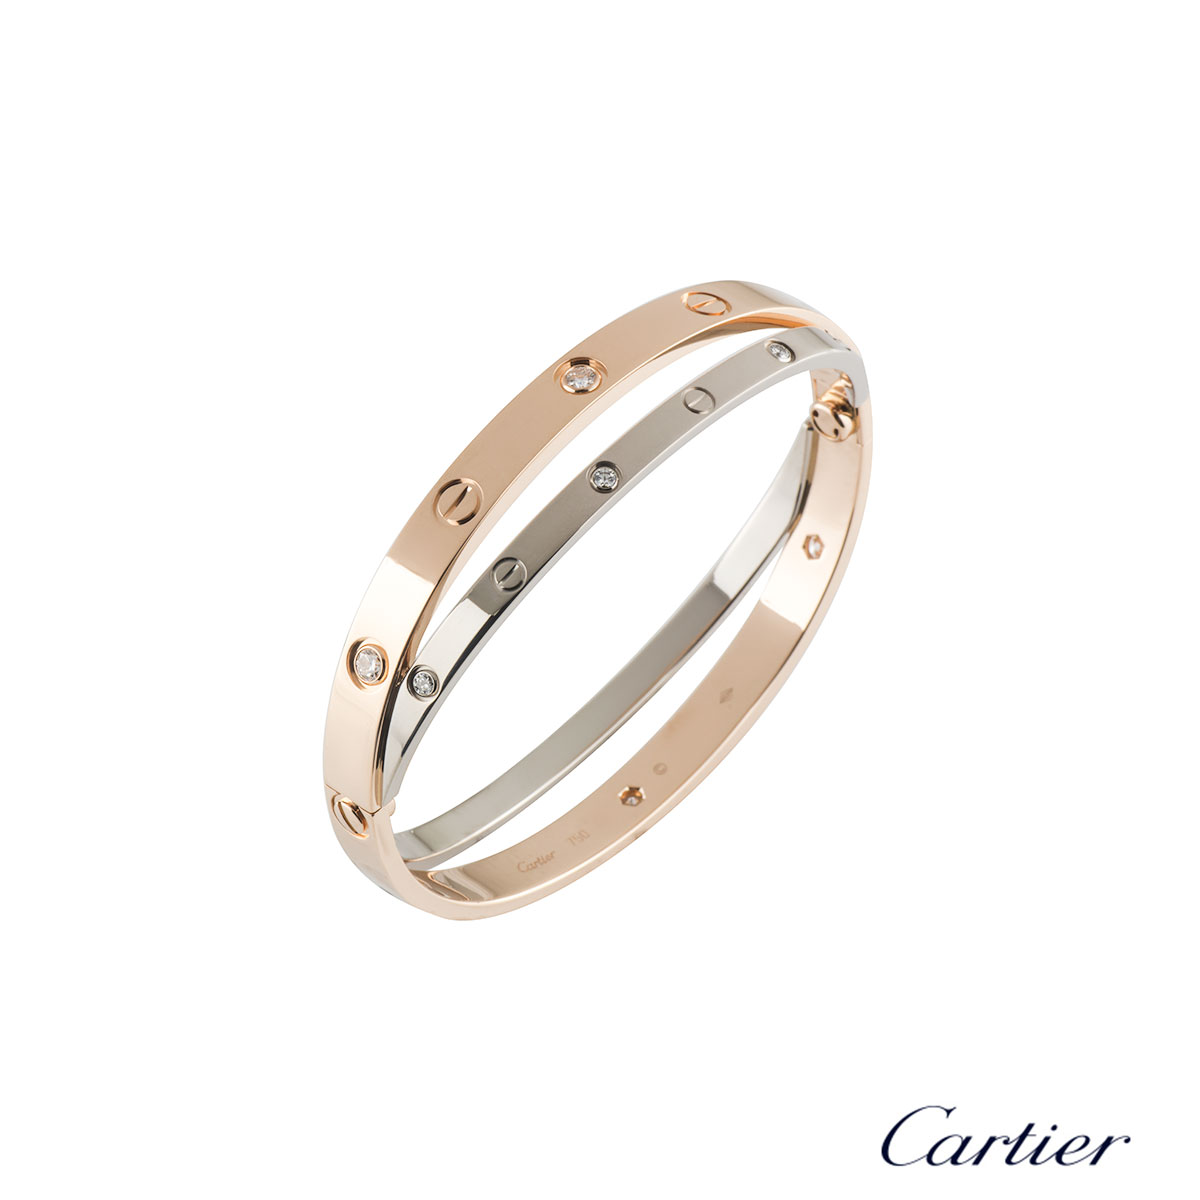 Cartier Love Rose & White Gold Diamond Bracelet Size 17 N6039117